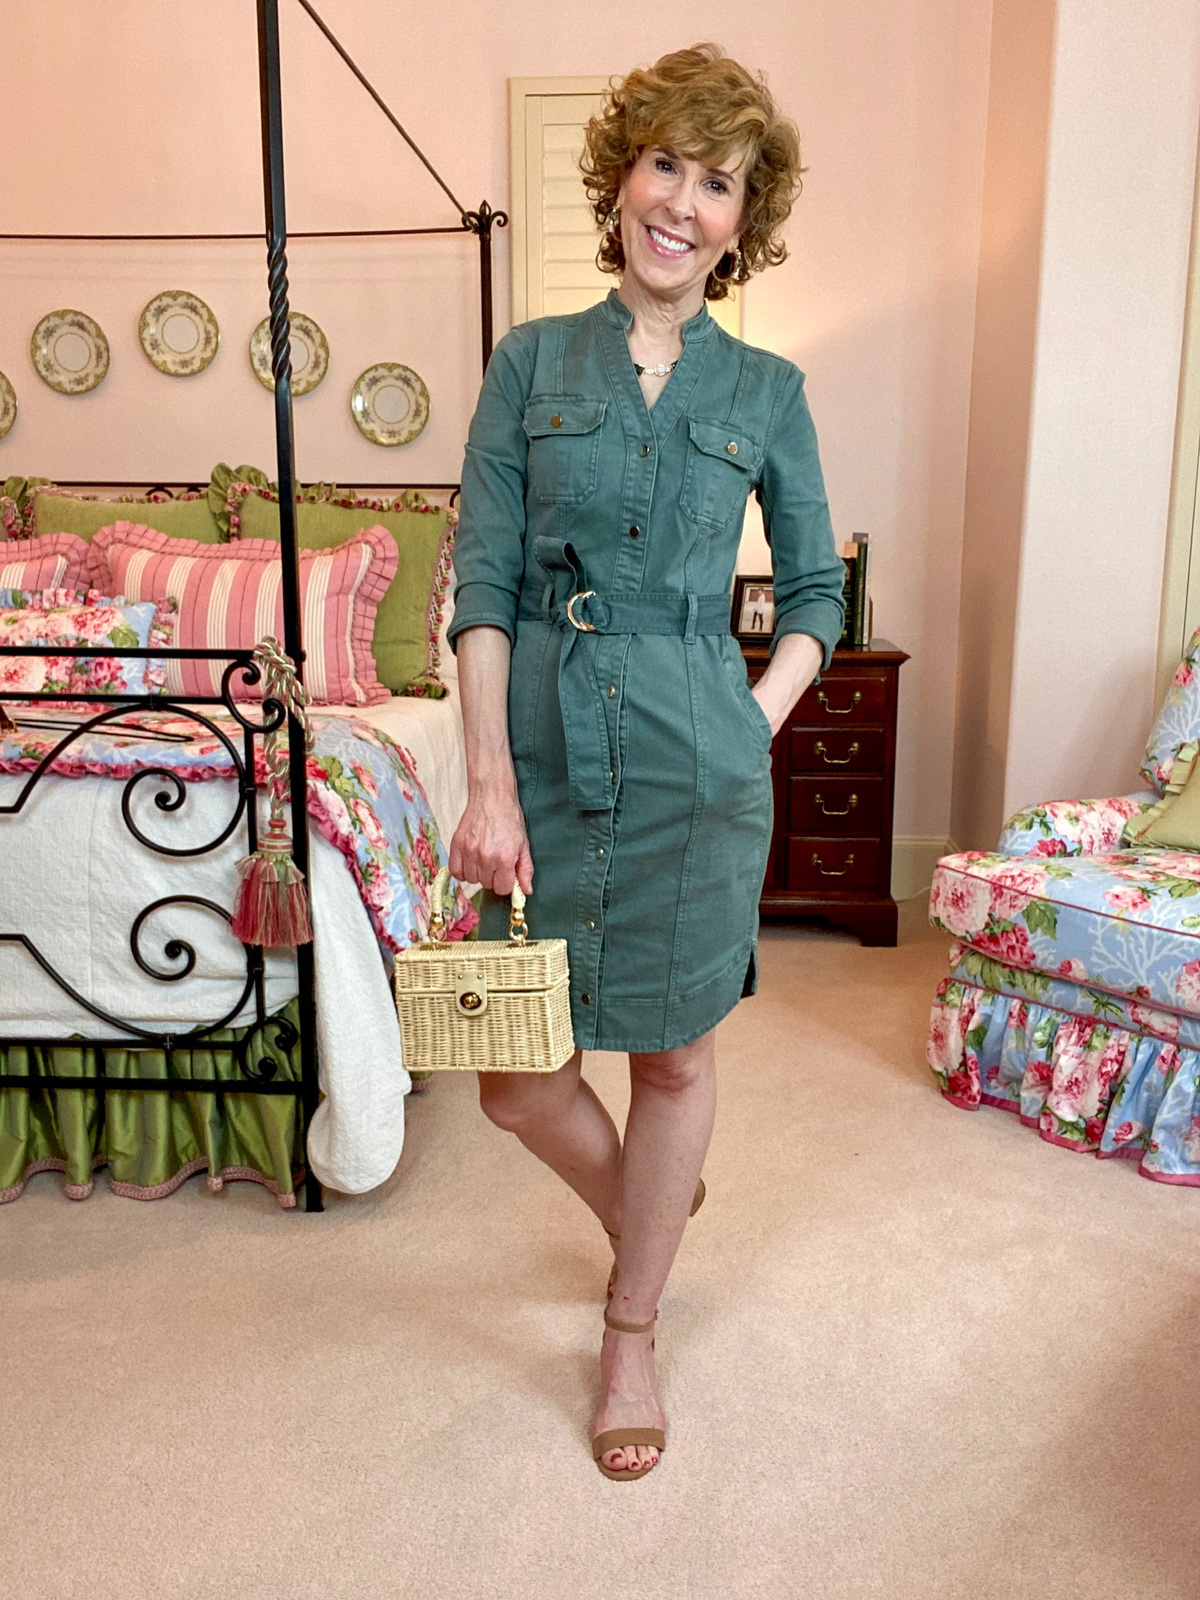 woman wearing WHBM green shirtdress standing in bedroom